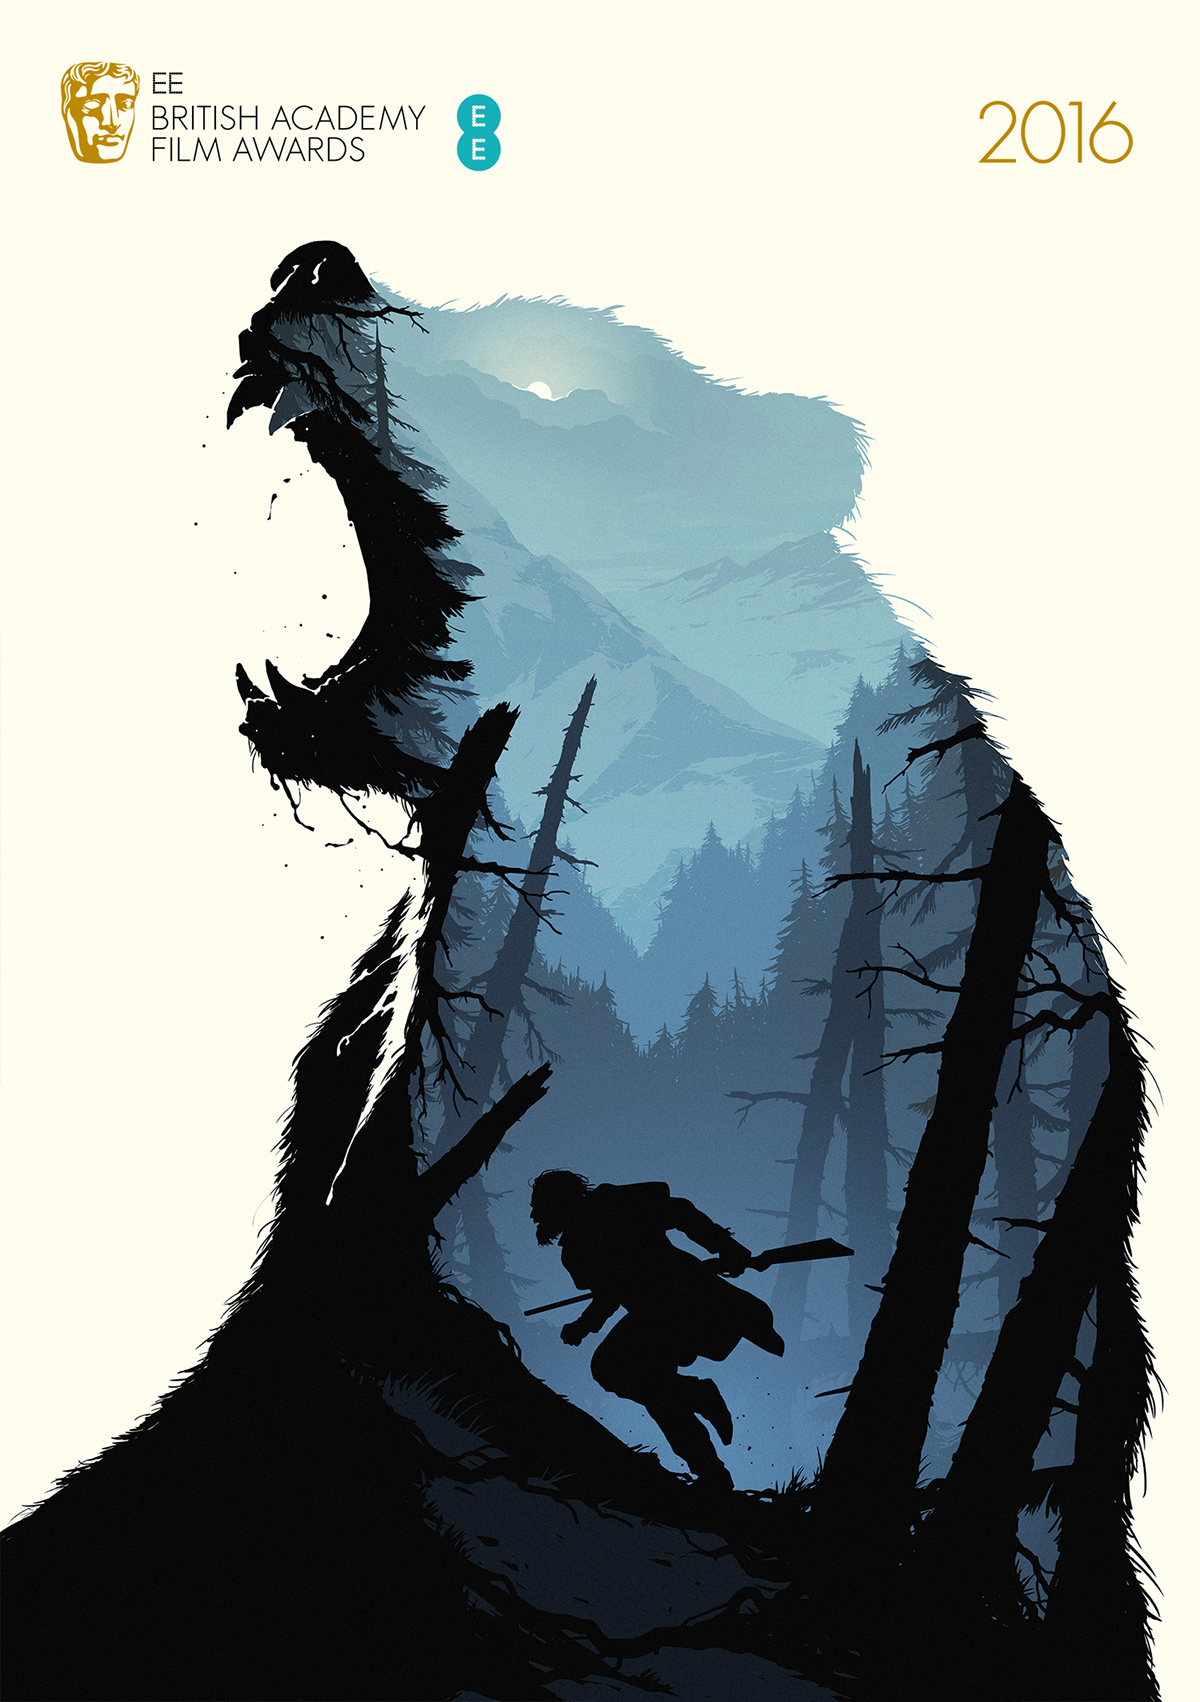 Movie Poster brother bear movie poster : BAFTA 2016 Best Film posters on Behance